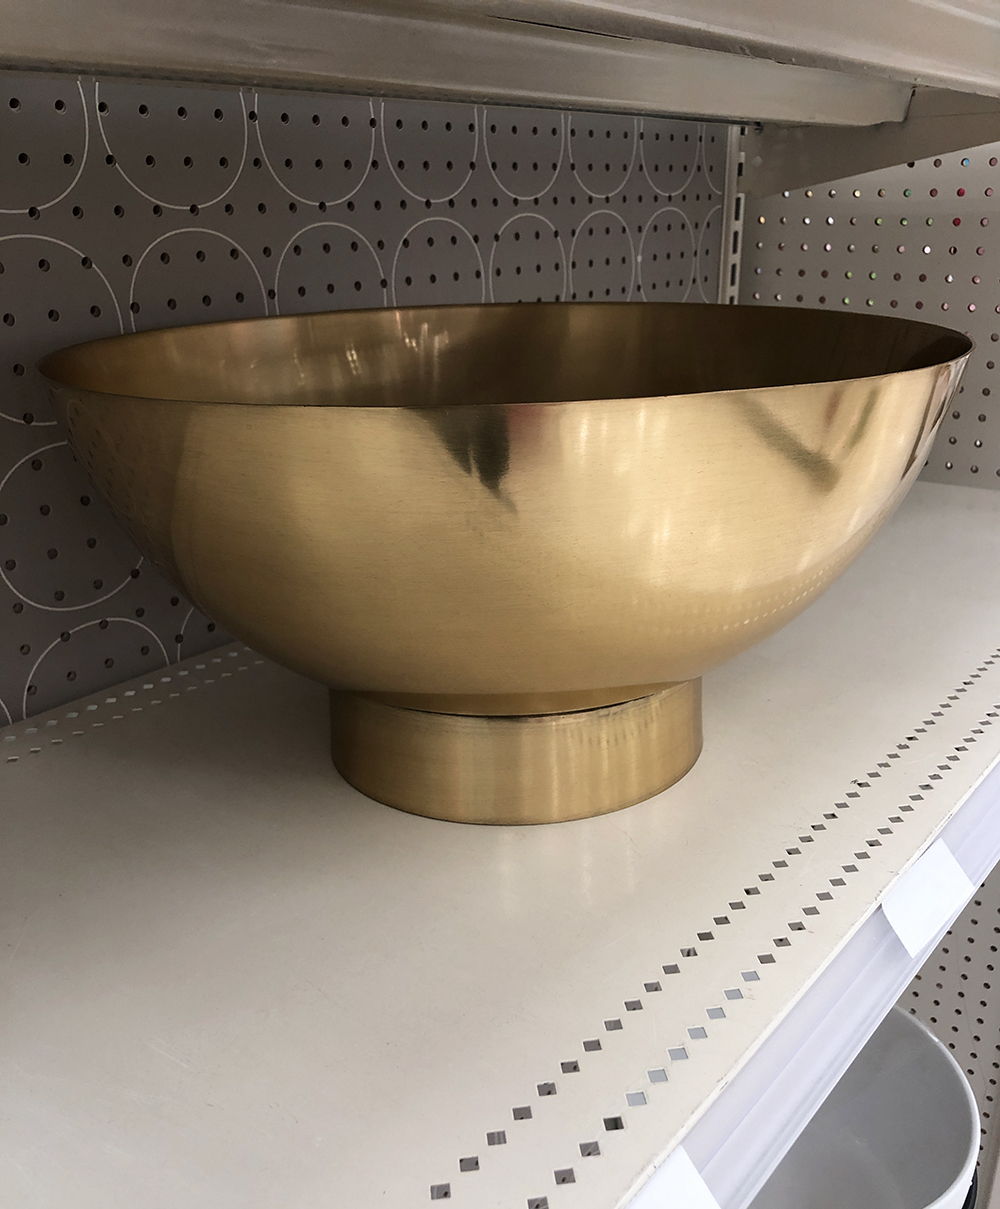 10 Home Decor Items That Impressed Me at Target - roomfortuesday.com